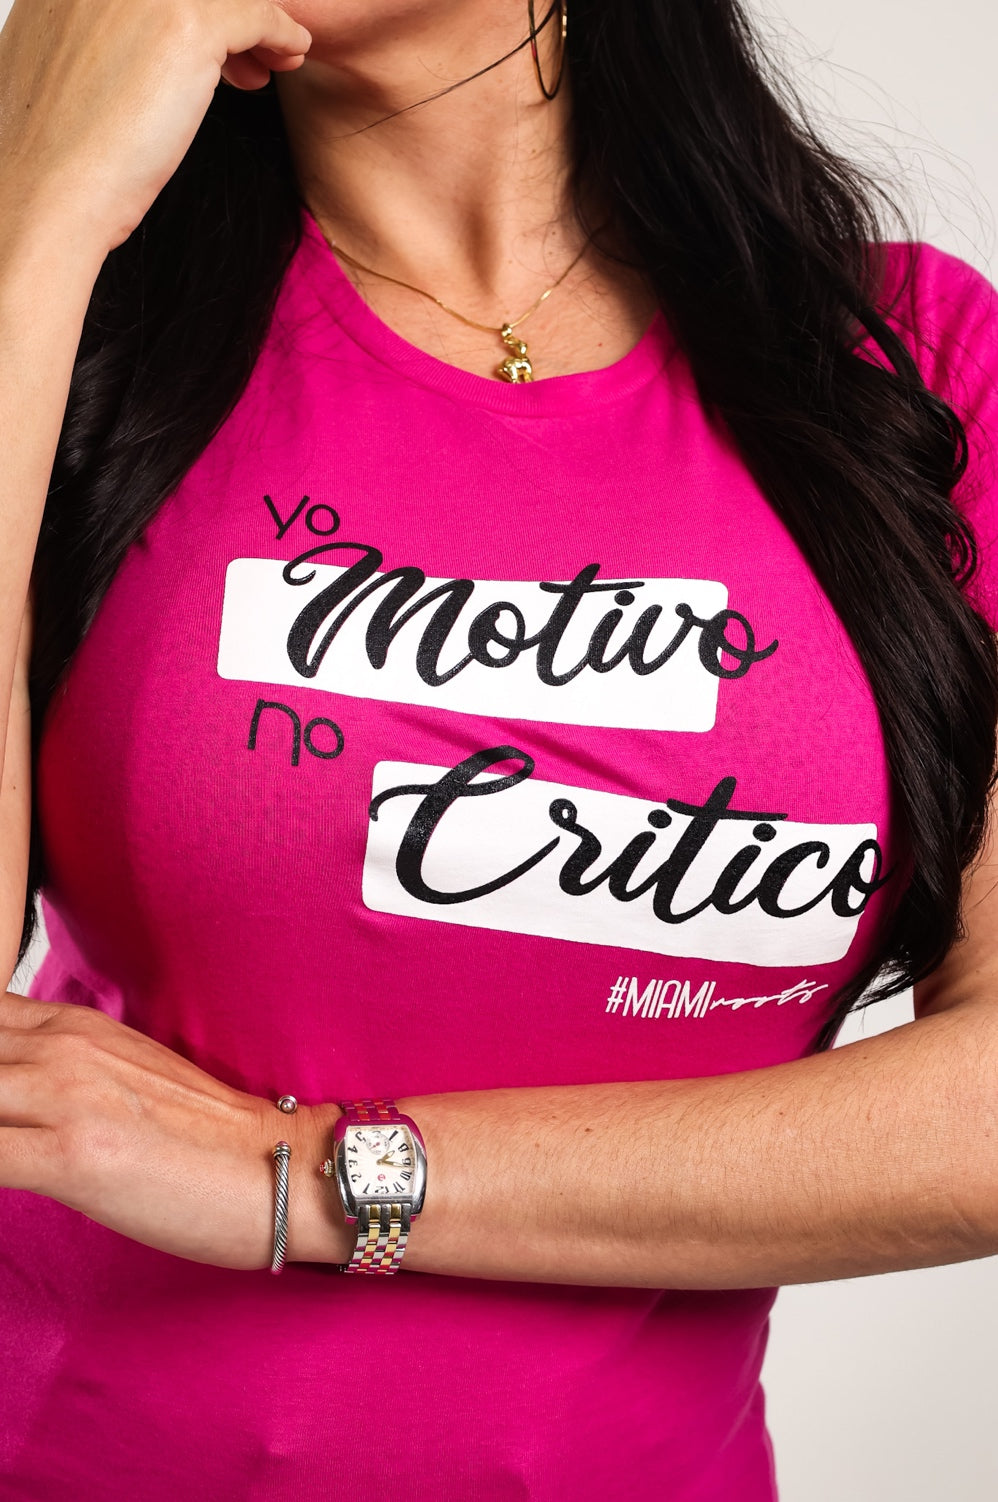 YO MOTIVO NO CRITICO Women's Slim Fit Tee